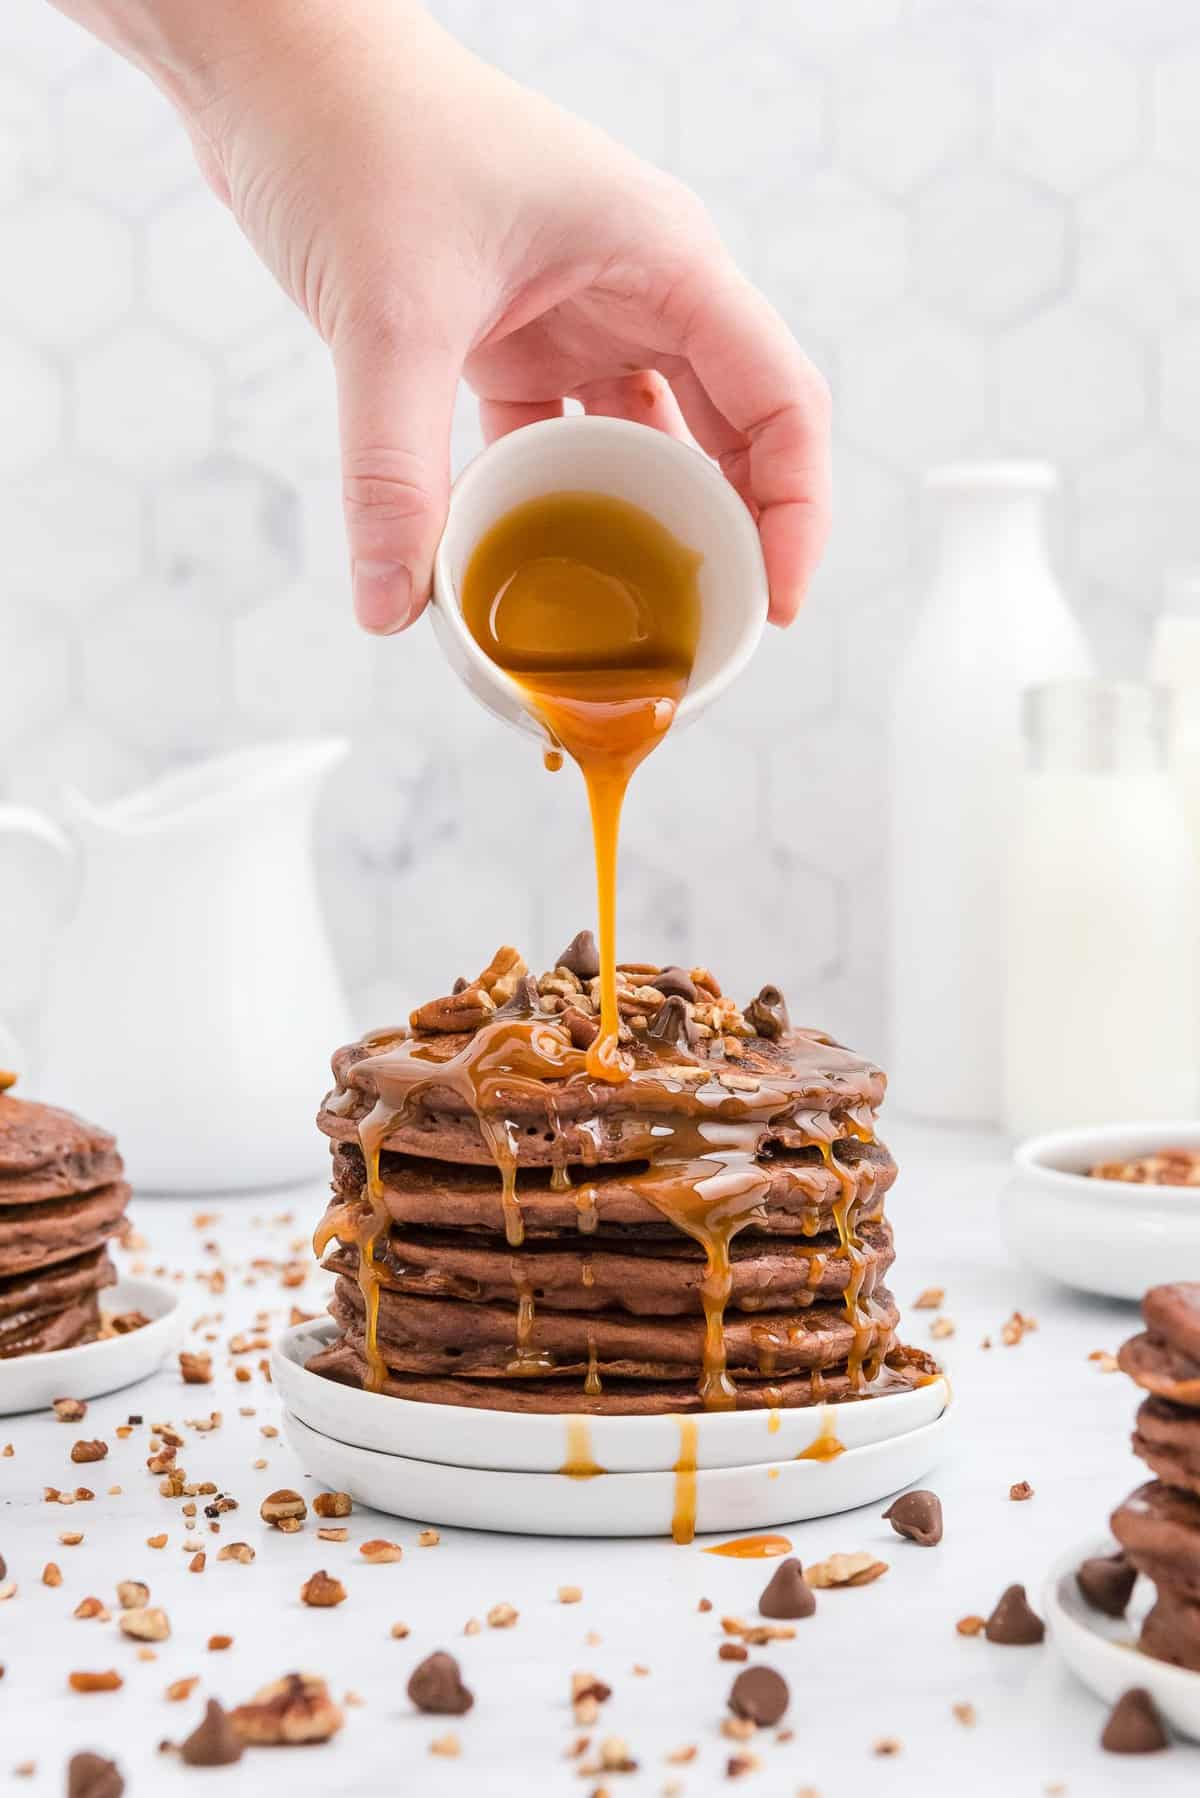 Caramel being poured on a stack of chocolate pancakes topped with pecans.